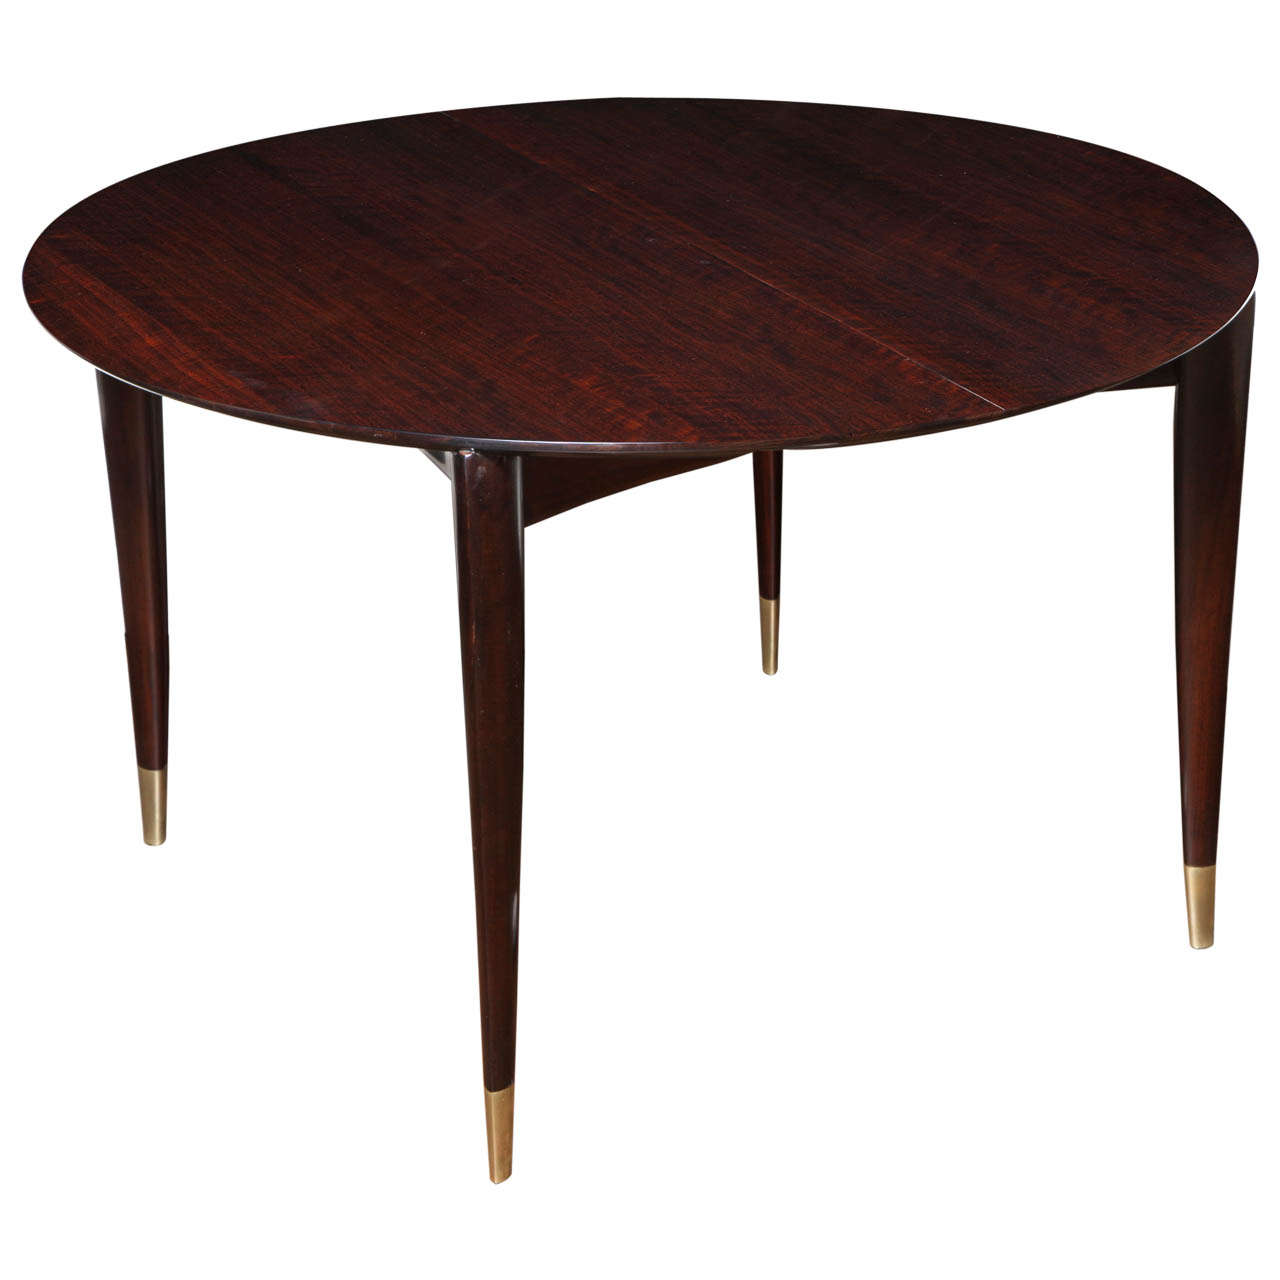 Circular Dining Table By Gio Ponti For M. Singer U0026 Sons For Sale